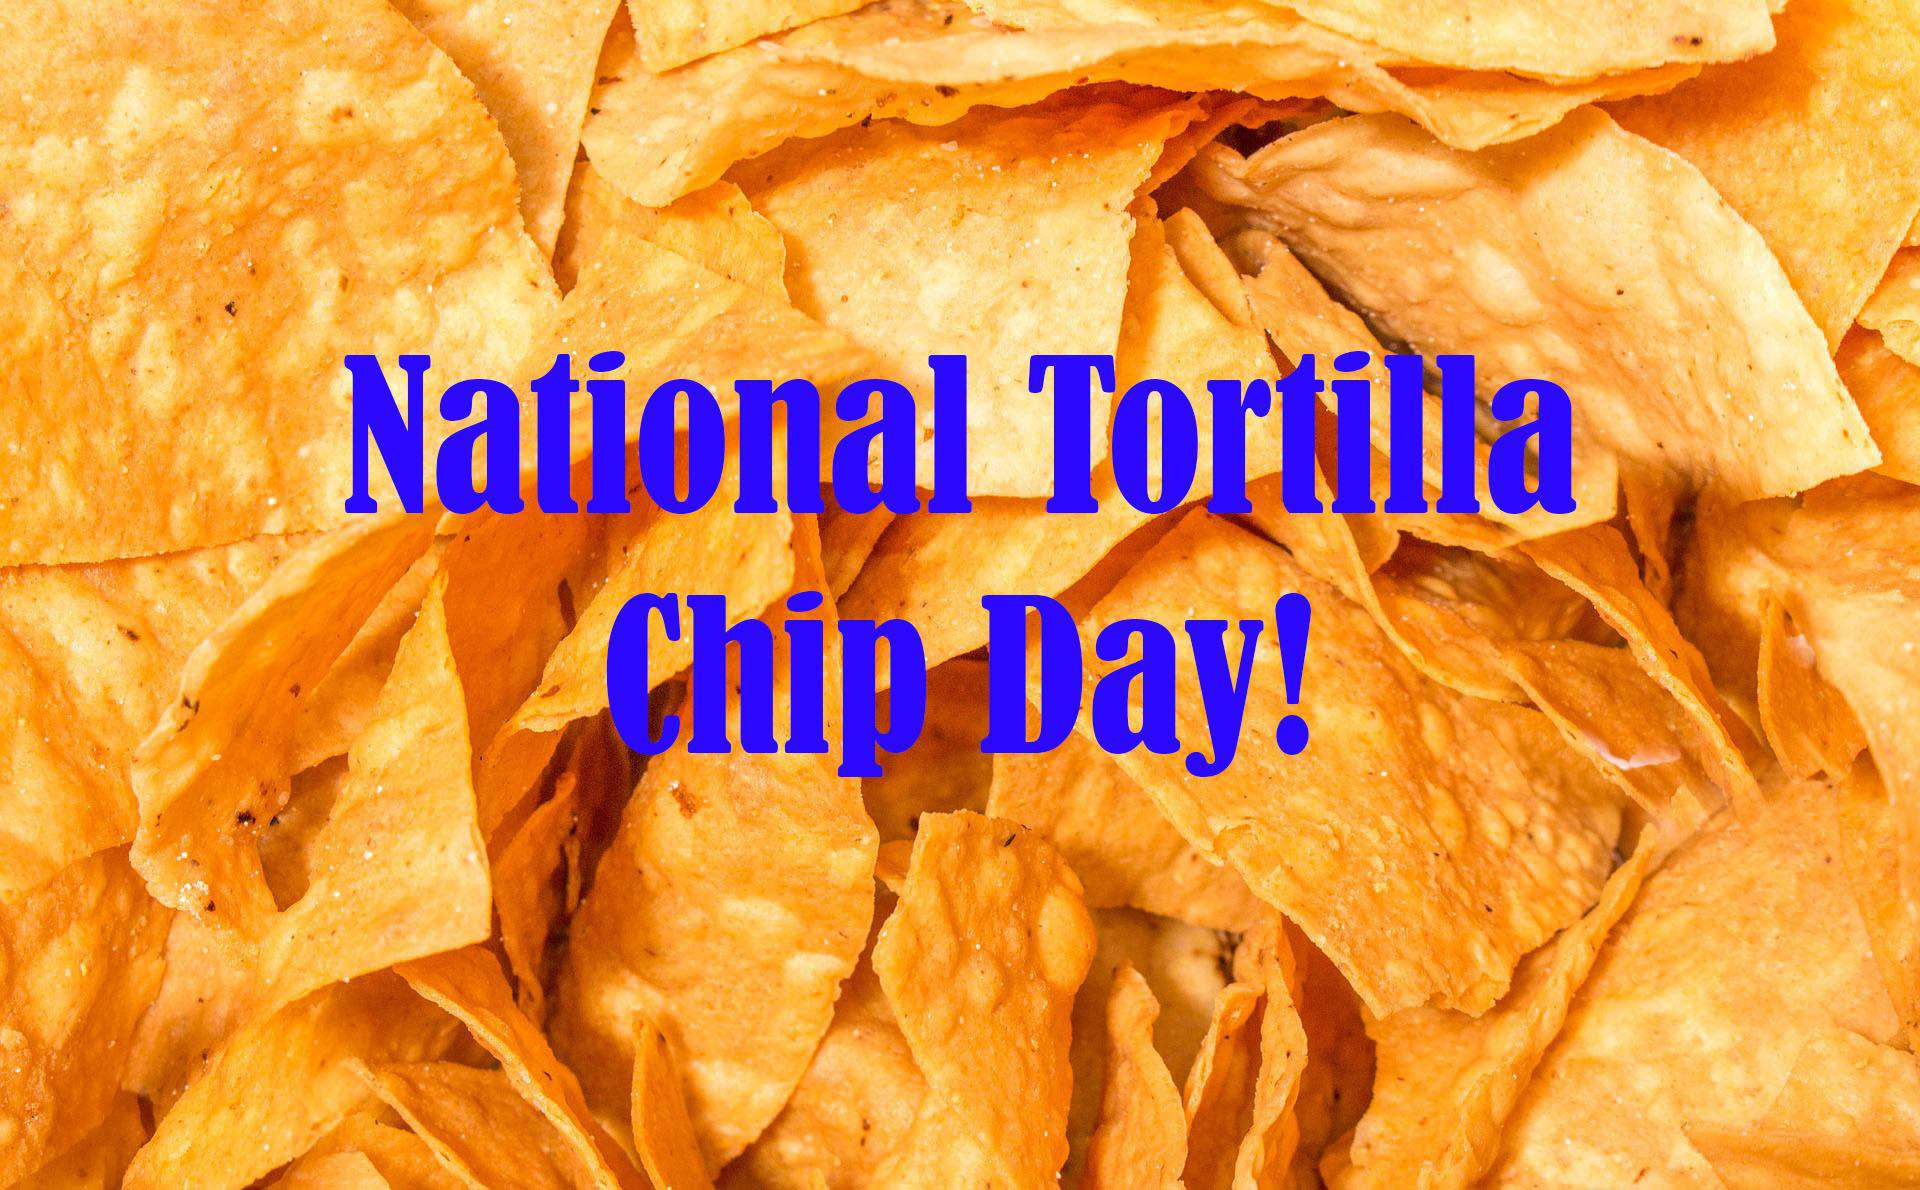 National Tortilla Chip Day Wishes for Instagram